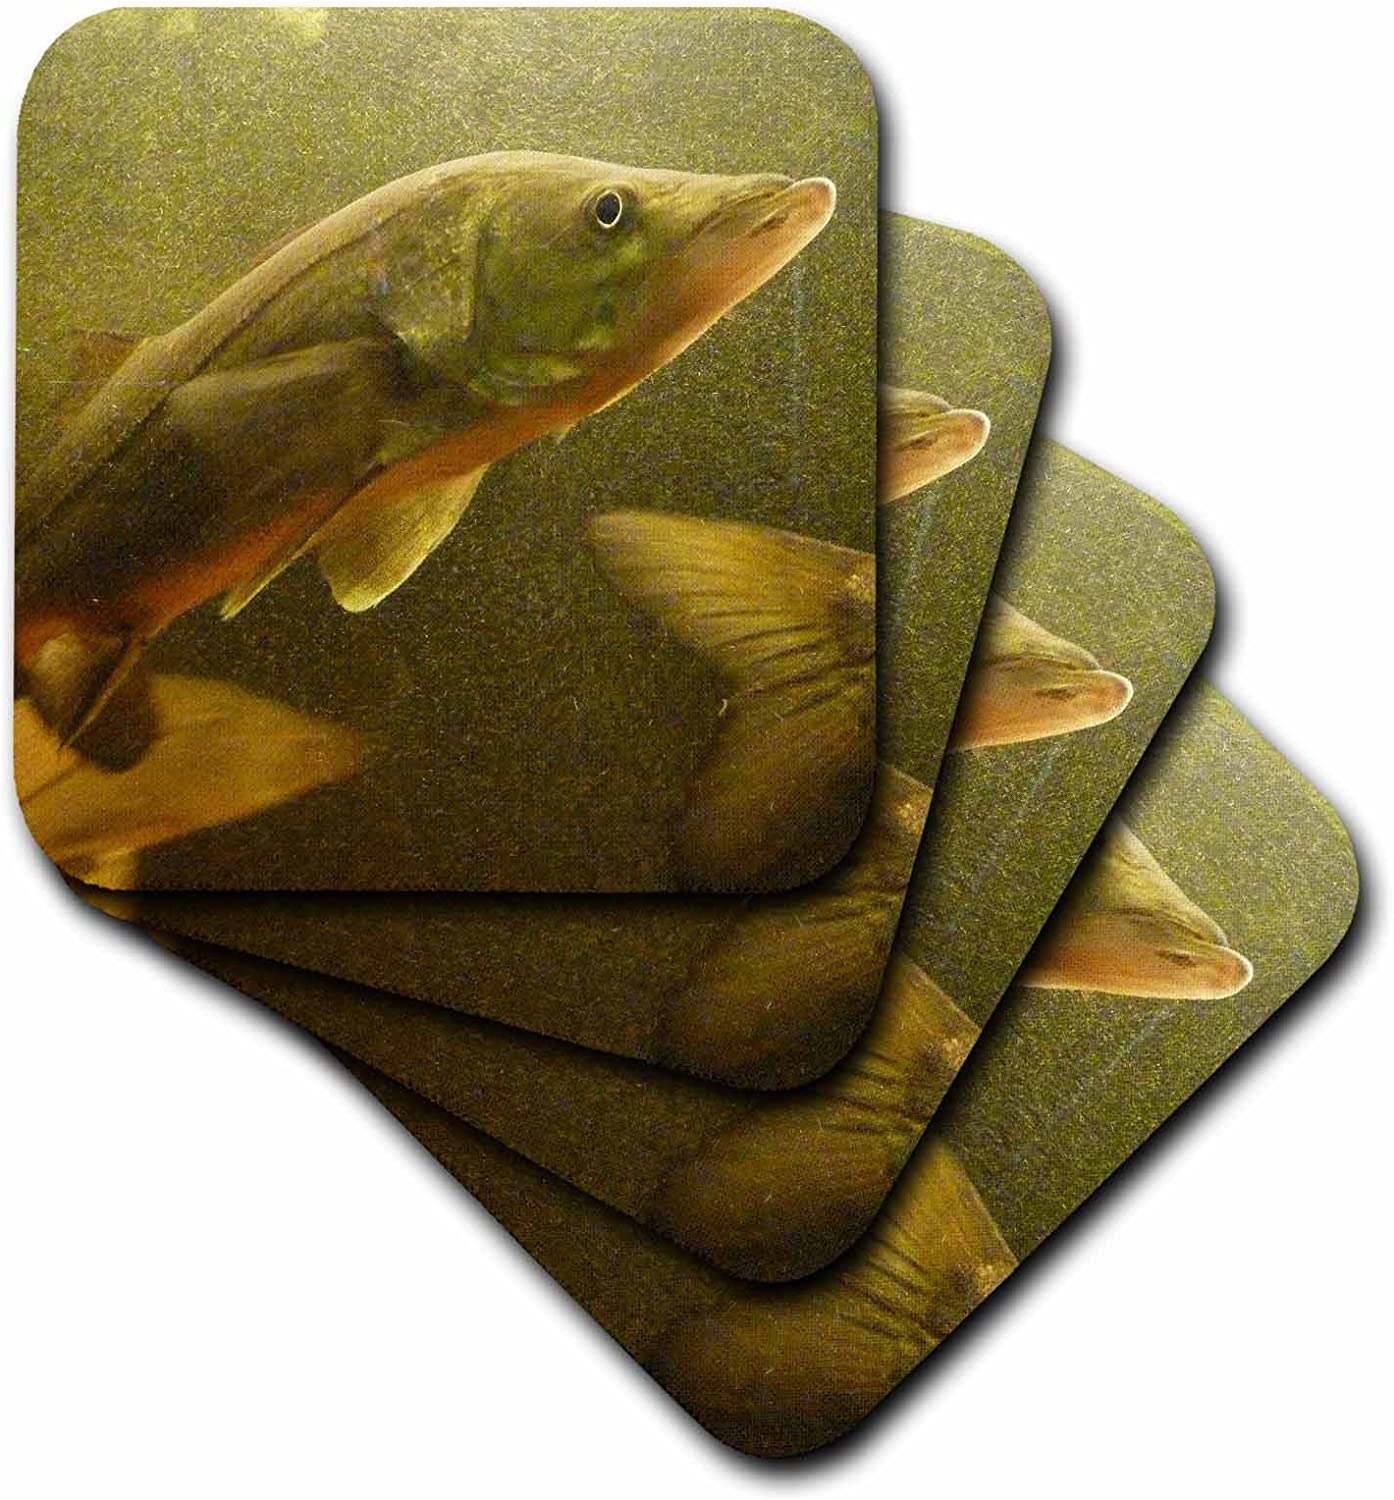 3dRose CST_13991_1 The Elusive Snook-Soft Coasters, Set of 4